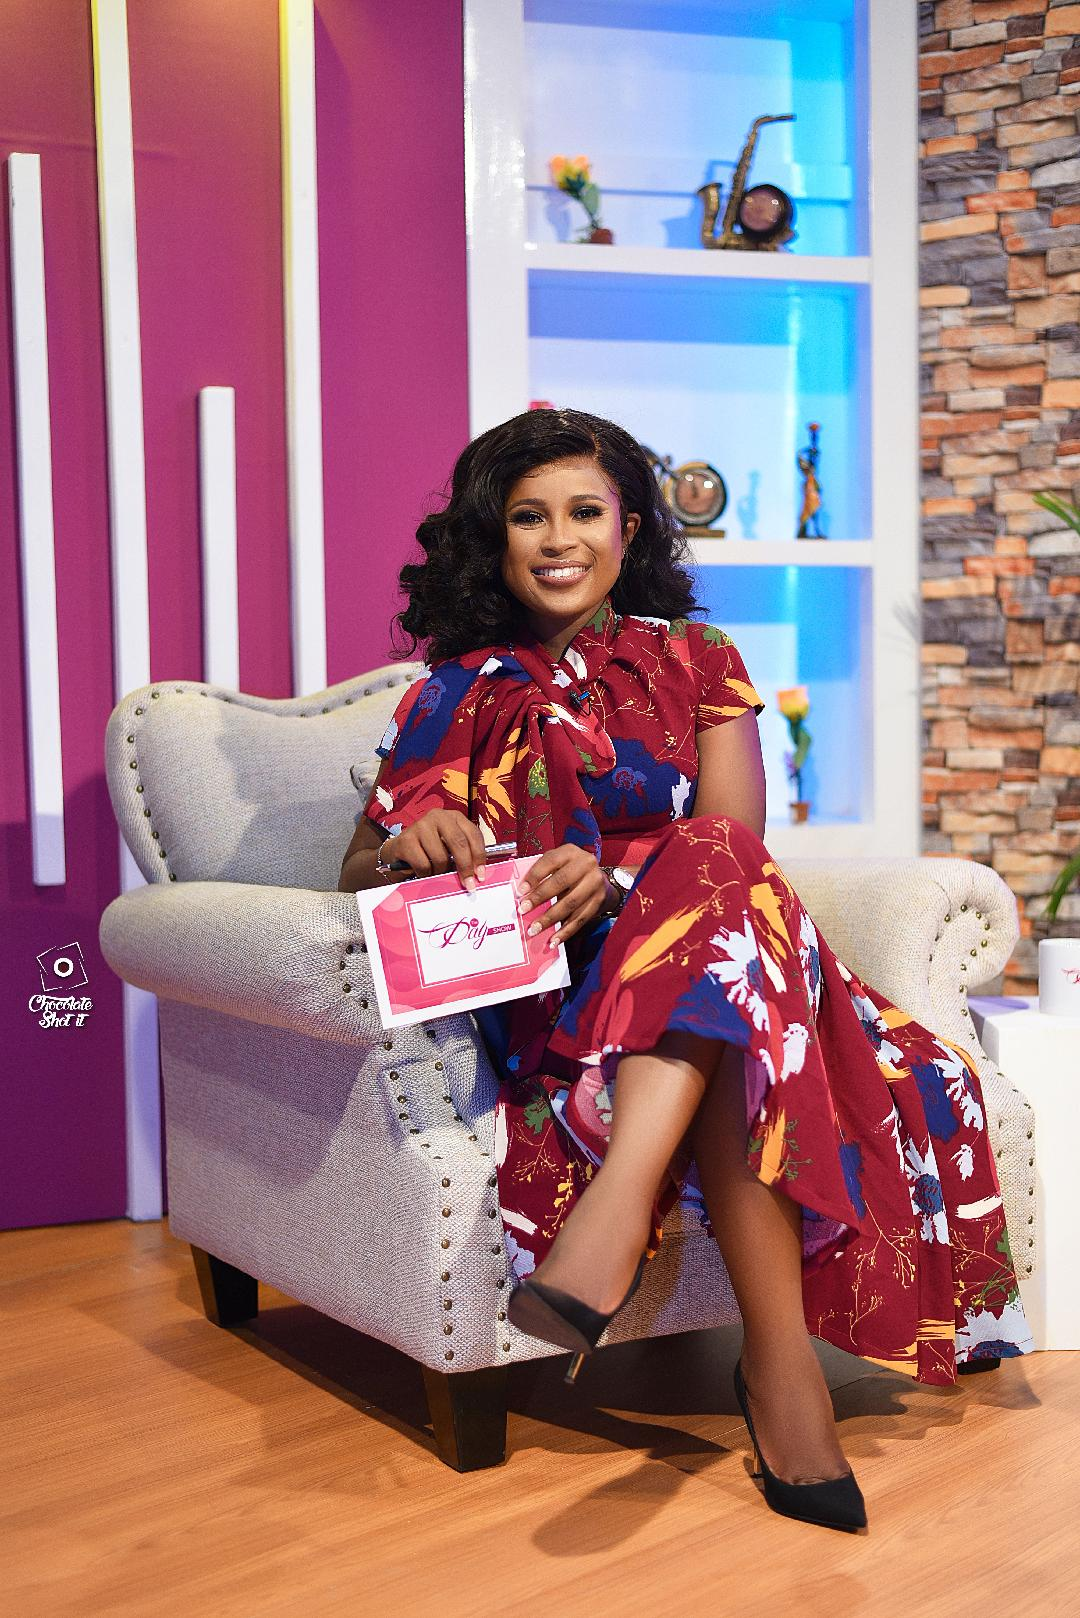 The Day Show With Berla Mundi premieres April 4